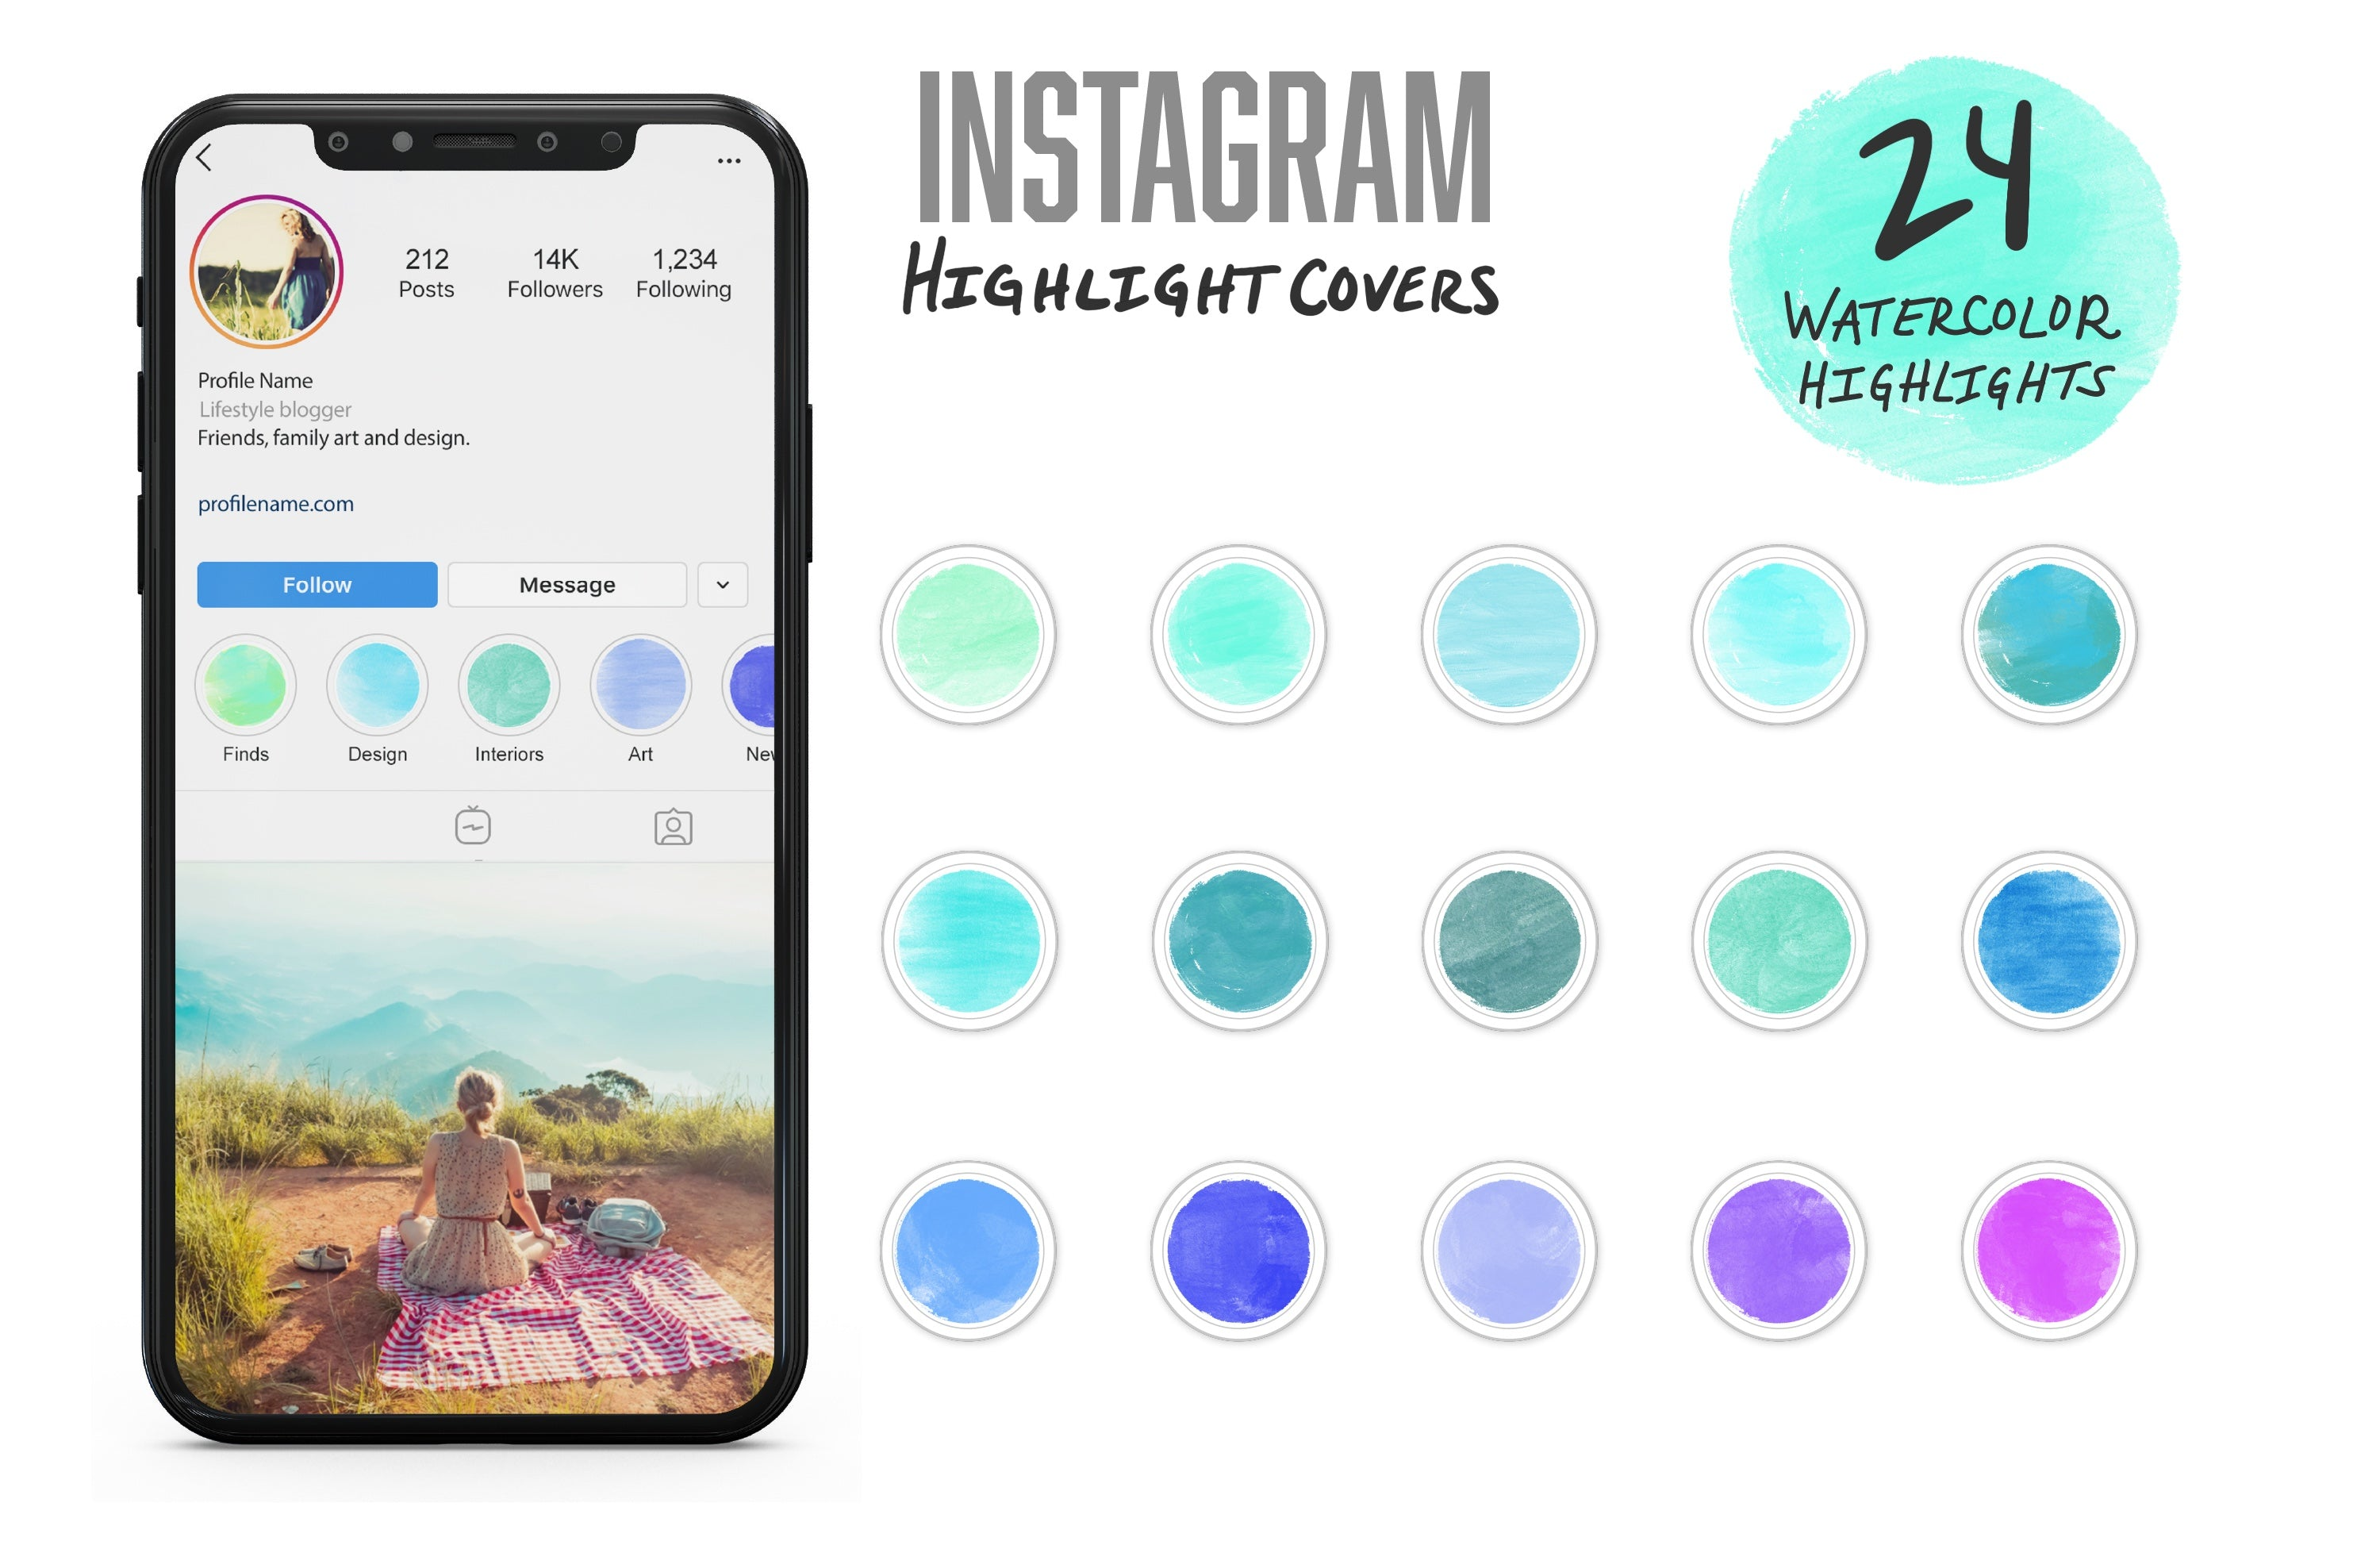 Instagram Watercolor Highlight Covers: 24 Hand Painted Pastel Watercolor Story Icons-Roam Wild Designs